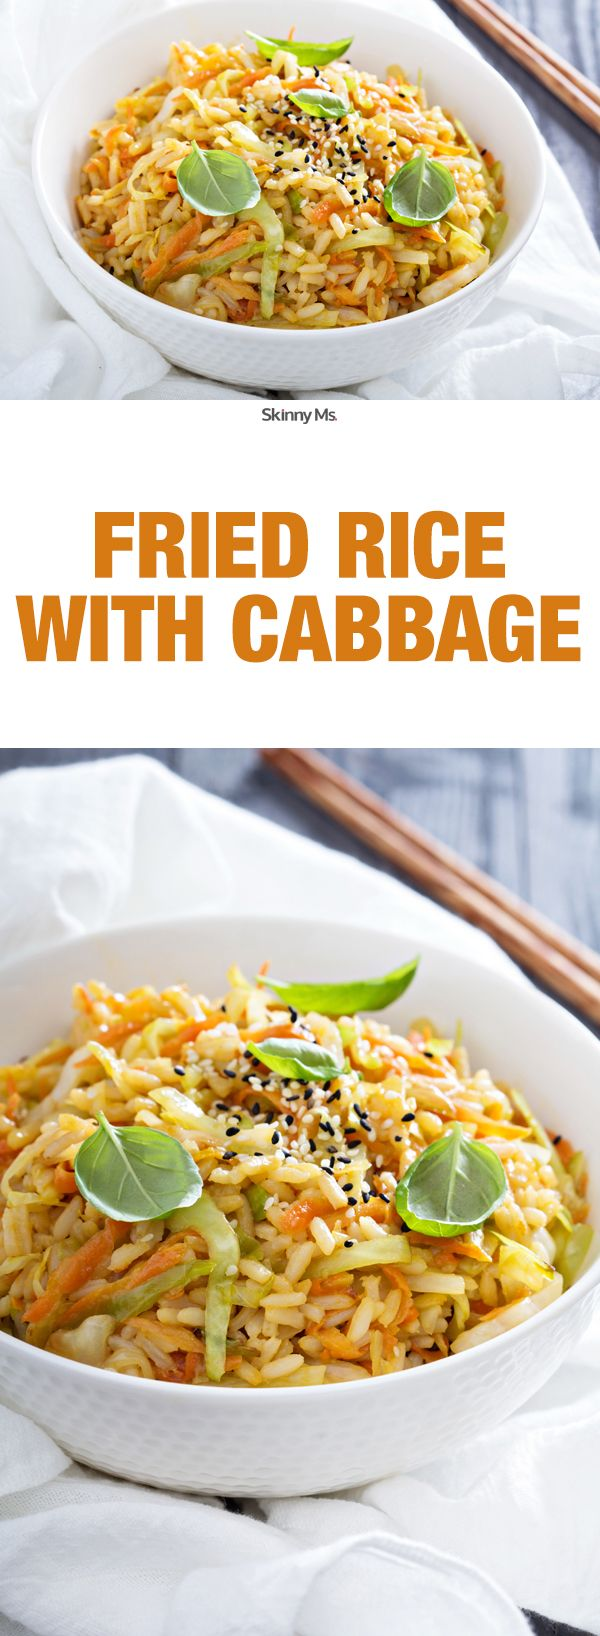 Fried Rice is always one of my takeout favorites, but it's so caloric! Here is an excellent alternative: Fried Rice with Cabbage!